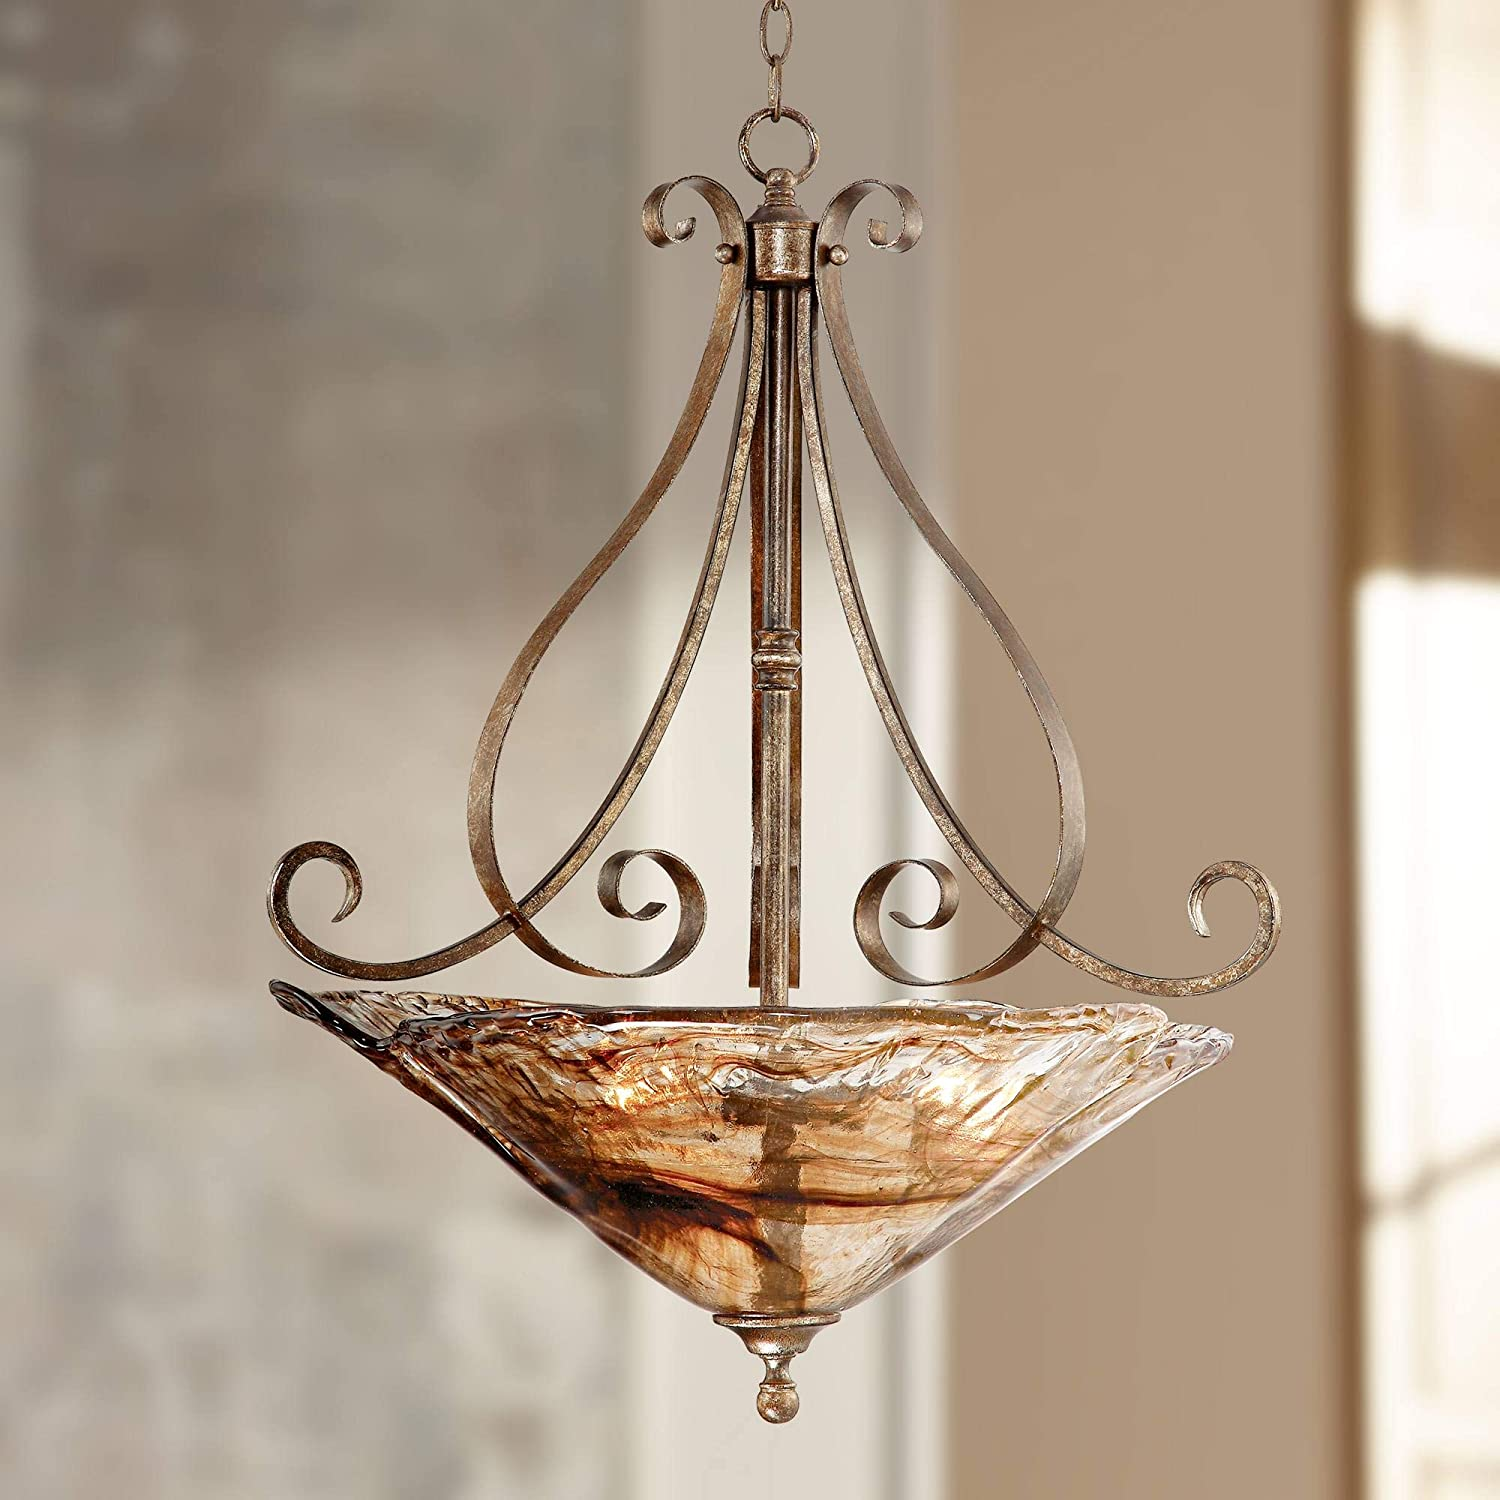 Franklin Iron Works Amber Scroll 24 3 4 Wide Pendant Light – Franklin Iron Works